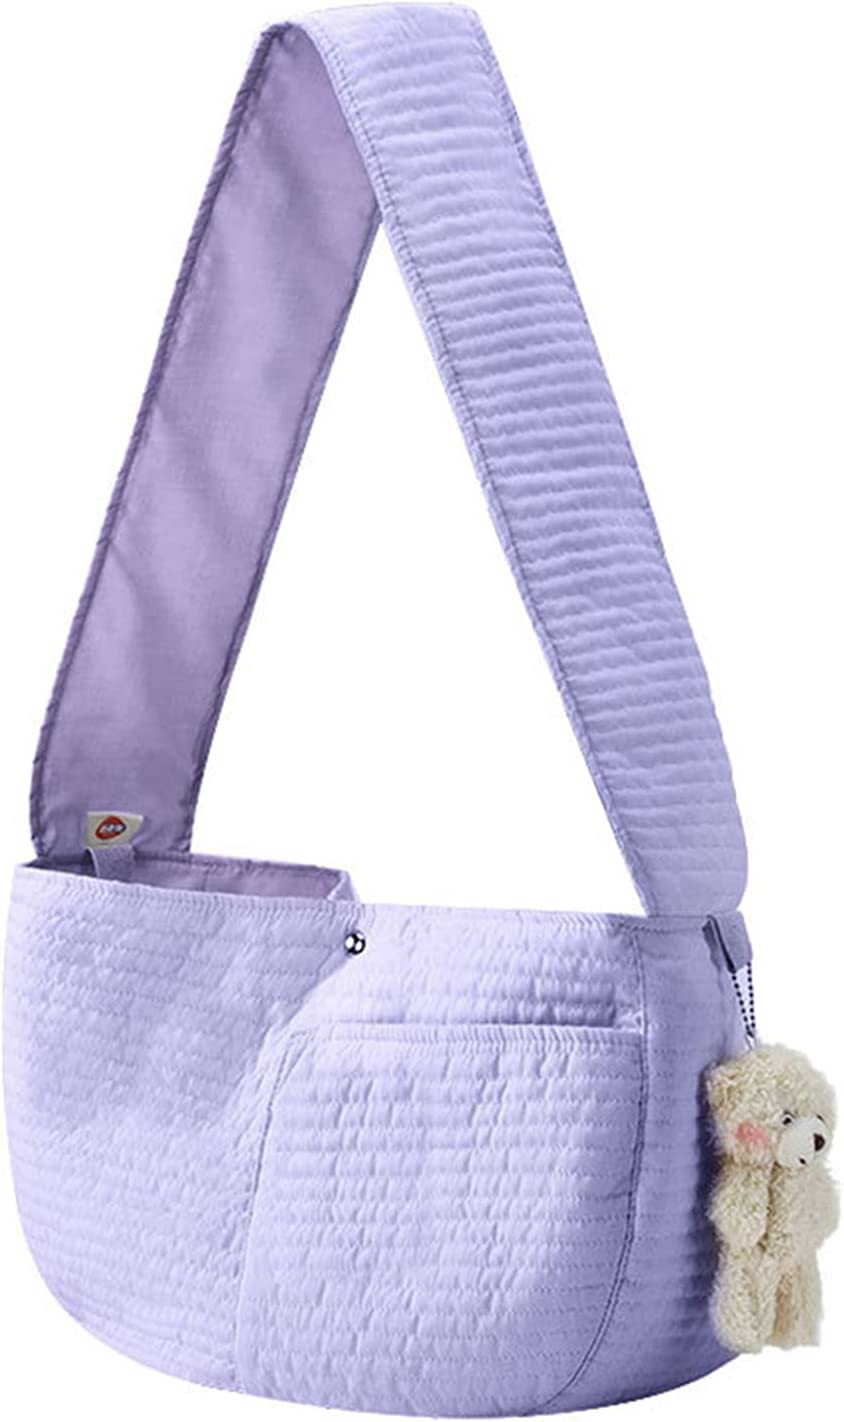 Dog and Cat trend rank Sling Surprise price Strap Suitab Backpack Canvas Pet One-Shoulder